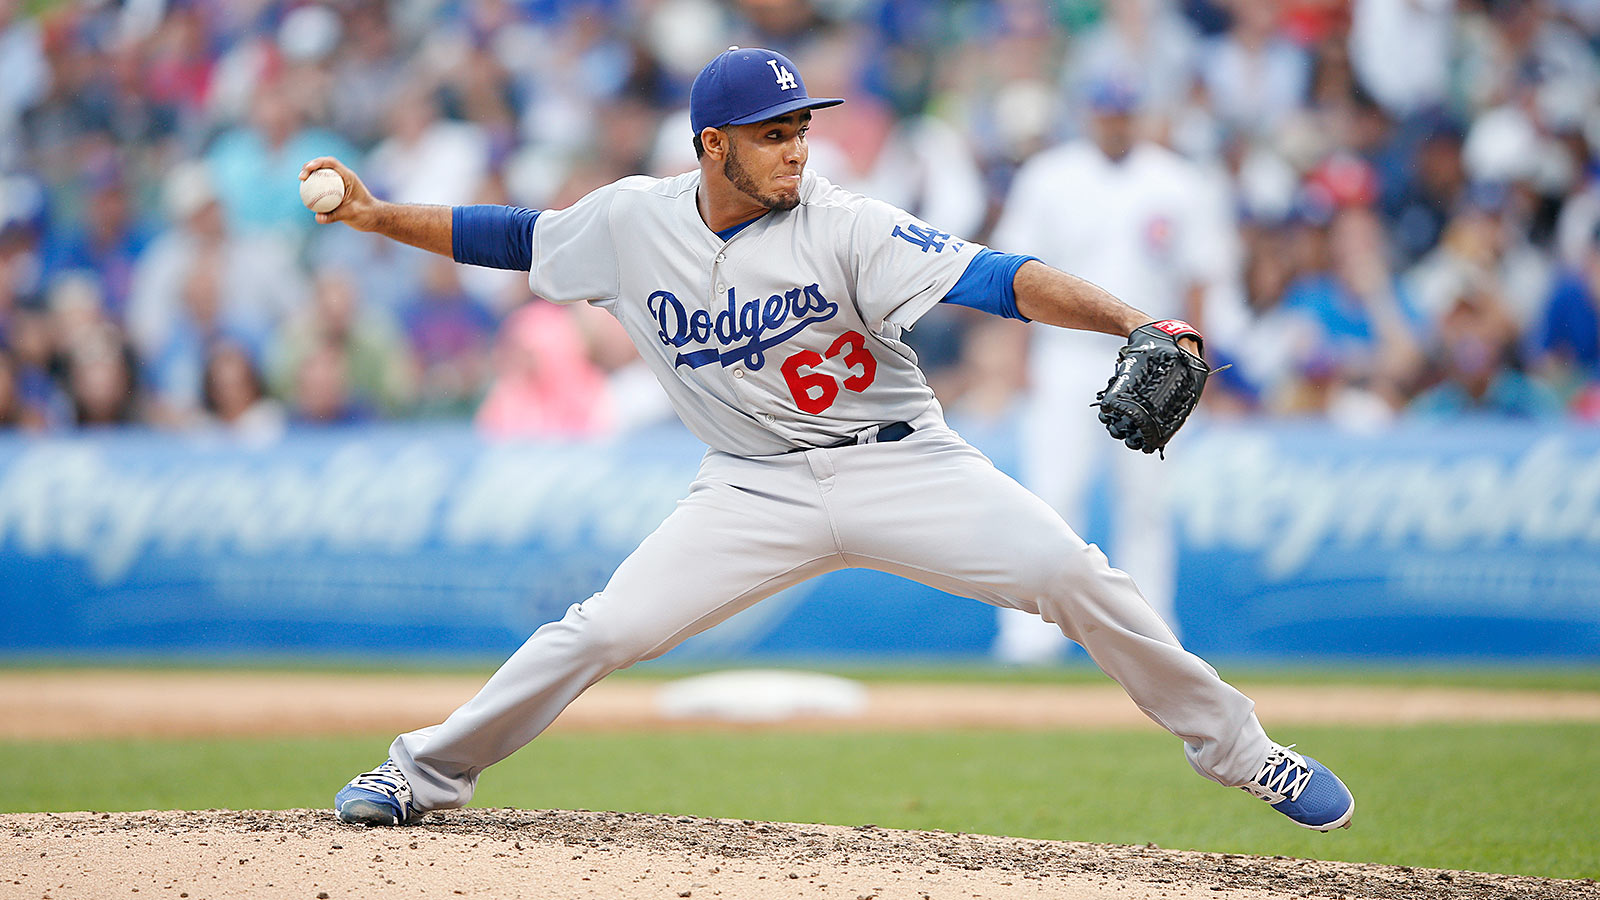 Dodgers reliever Yimi Garcia involved in car accident